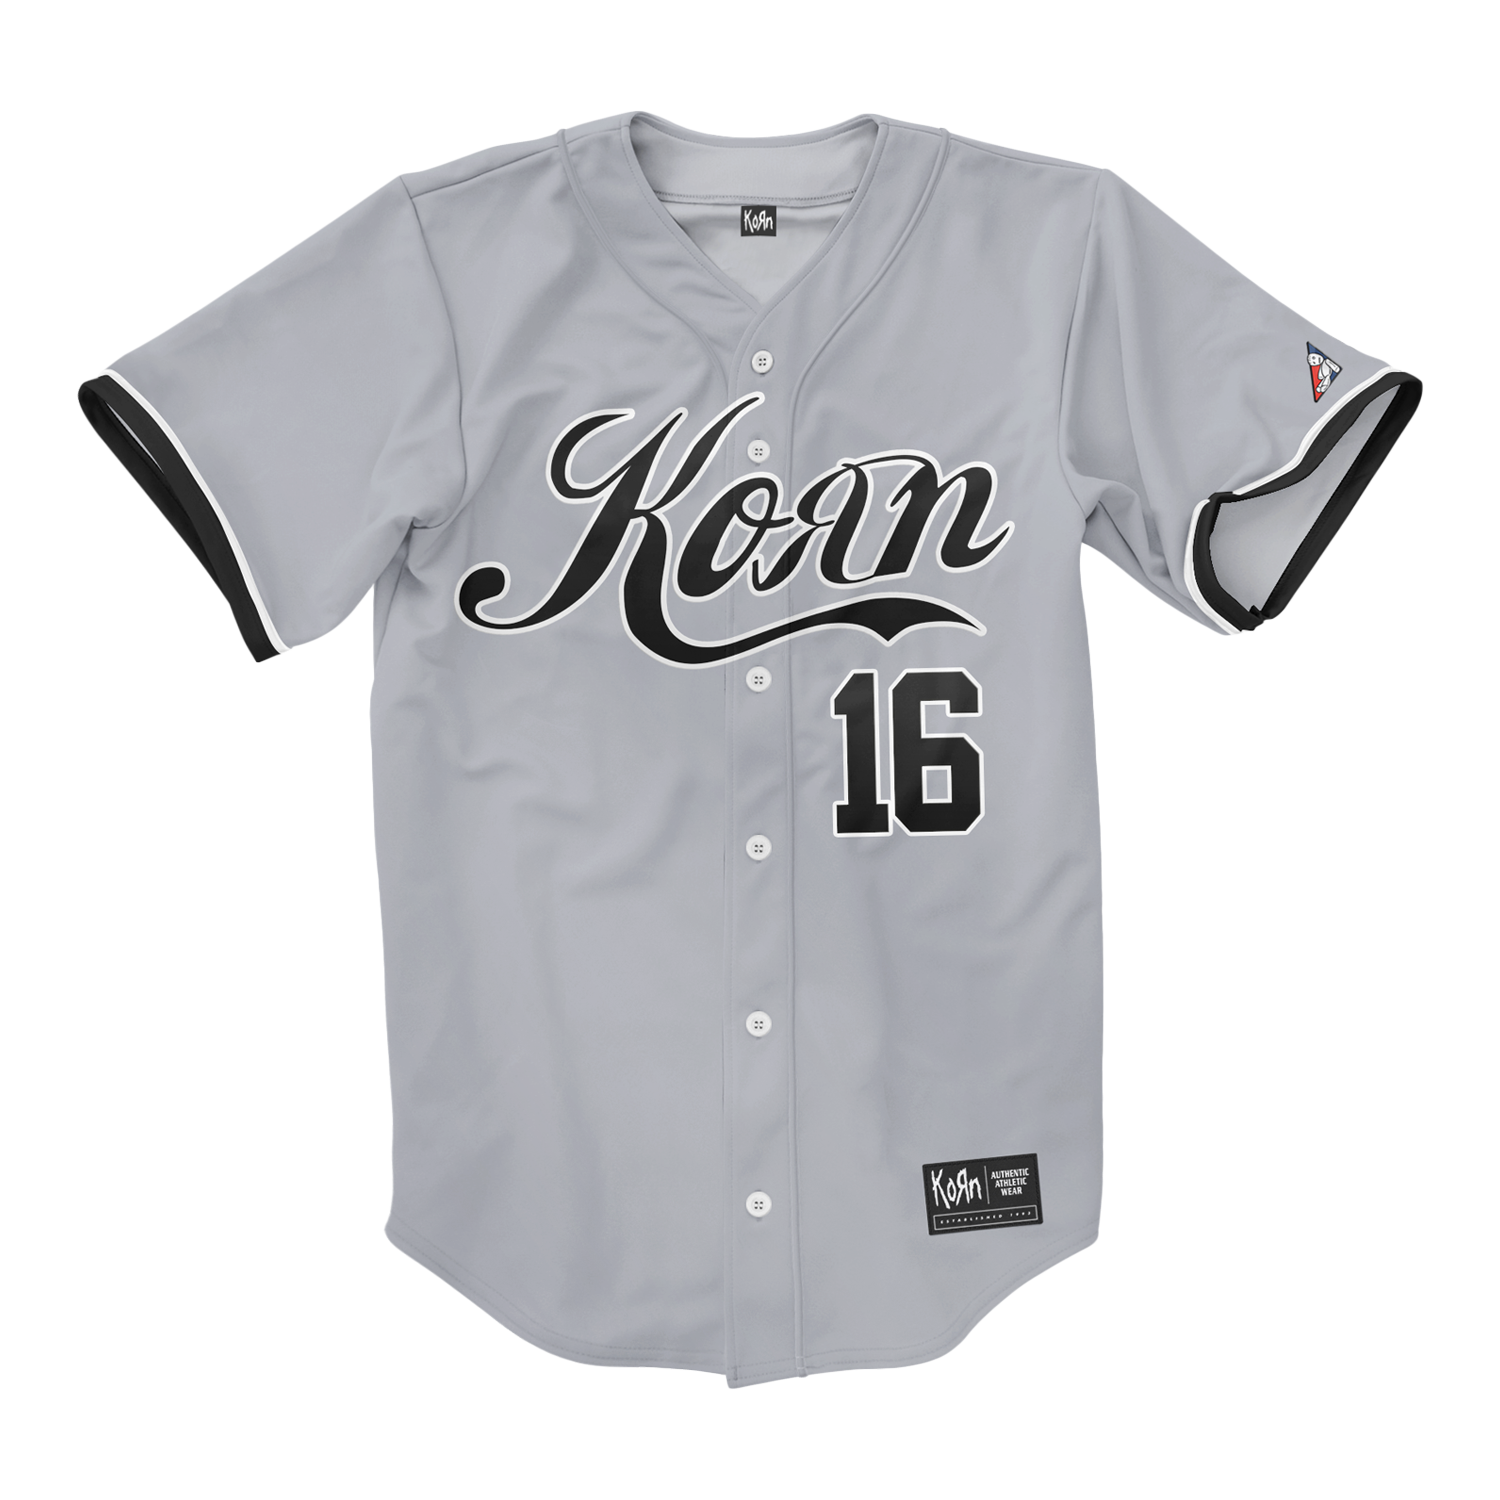 Korn 'Take Me' Jersey. Exclusive to kornlimited.com, Official Limited Edition, Official Merch, Official Store, Official Shop, Hoodie, Official Merchandise, T-shirt, Hoodie, Jacket, Shirts, Blind Jersey, Shirt, killermerch.com, Killer Merch